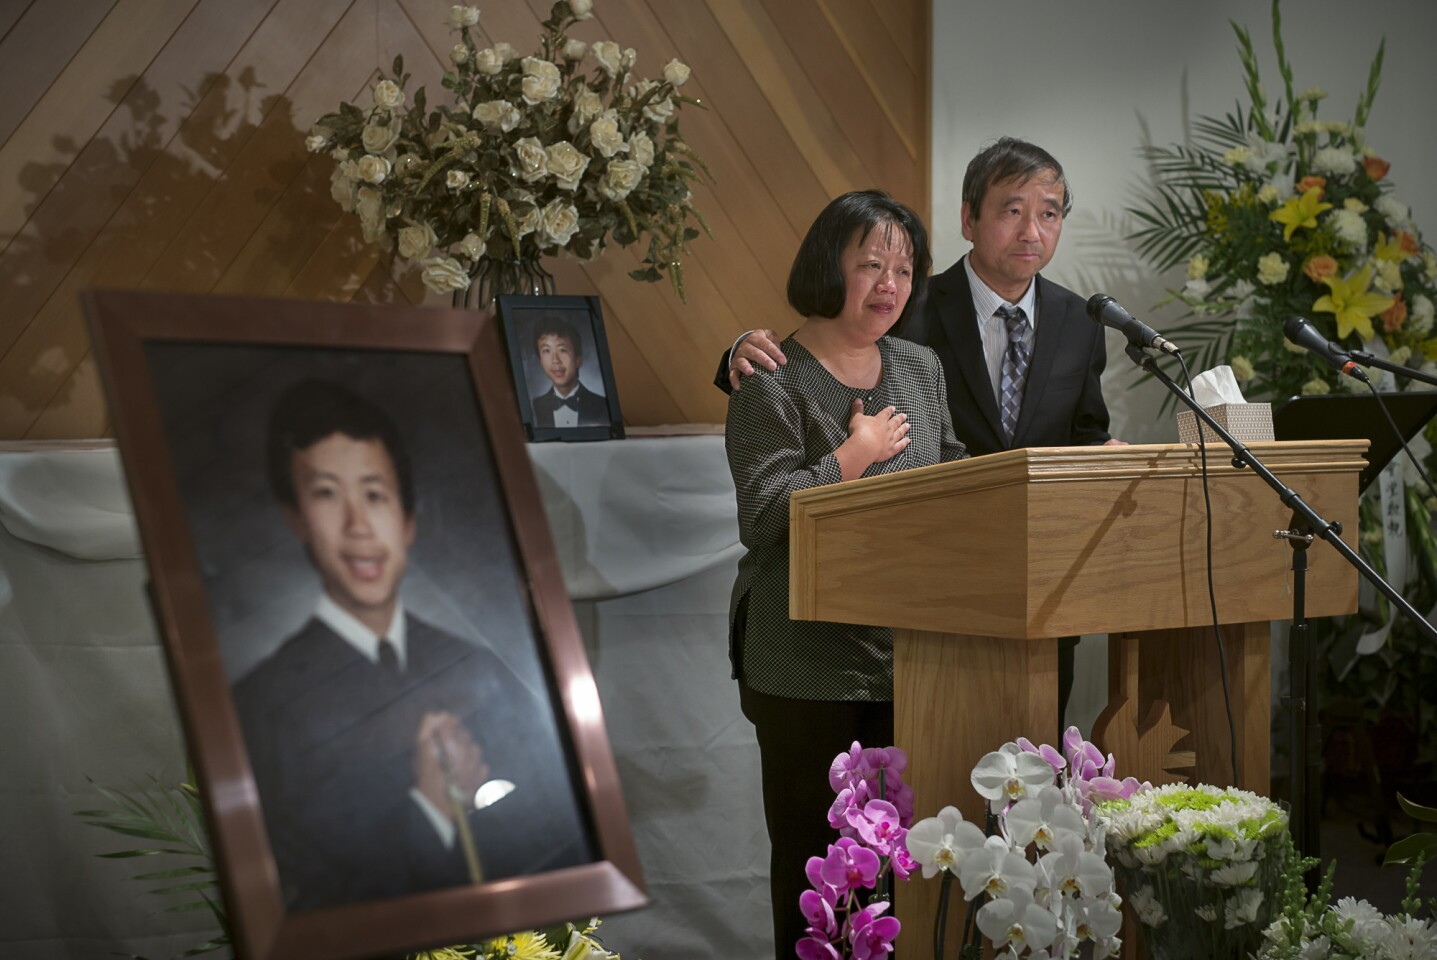 Kelly Wang and Johnny Chen speak to the crowd at a memorial at Chinese Church in Christ for their son George Chen, a student at UC Santa Barbara, who was one of those killed in last month's rampage in Isla Vista, Calif.